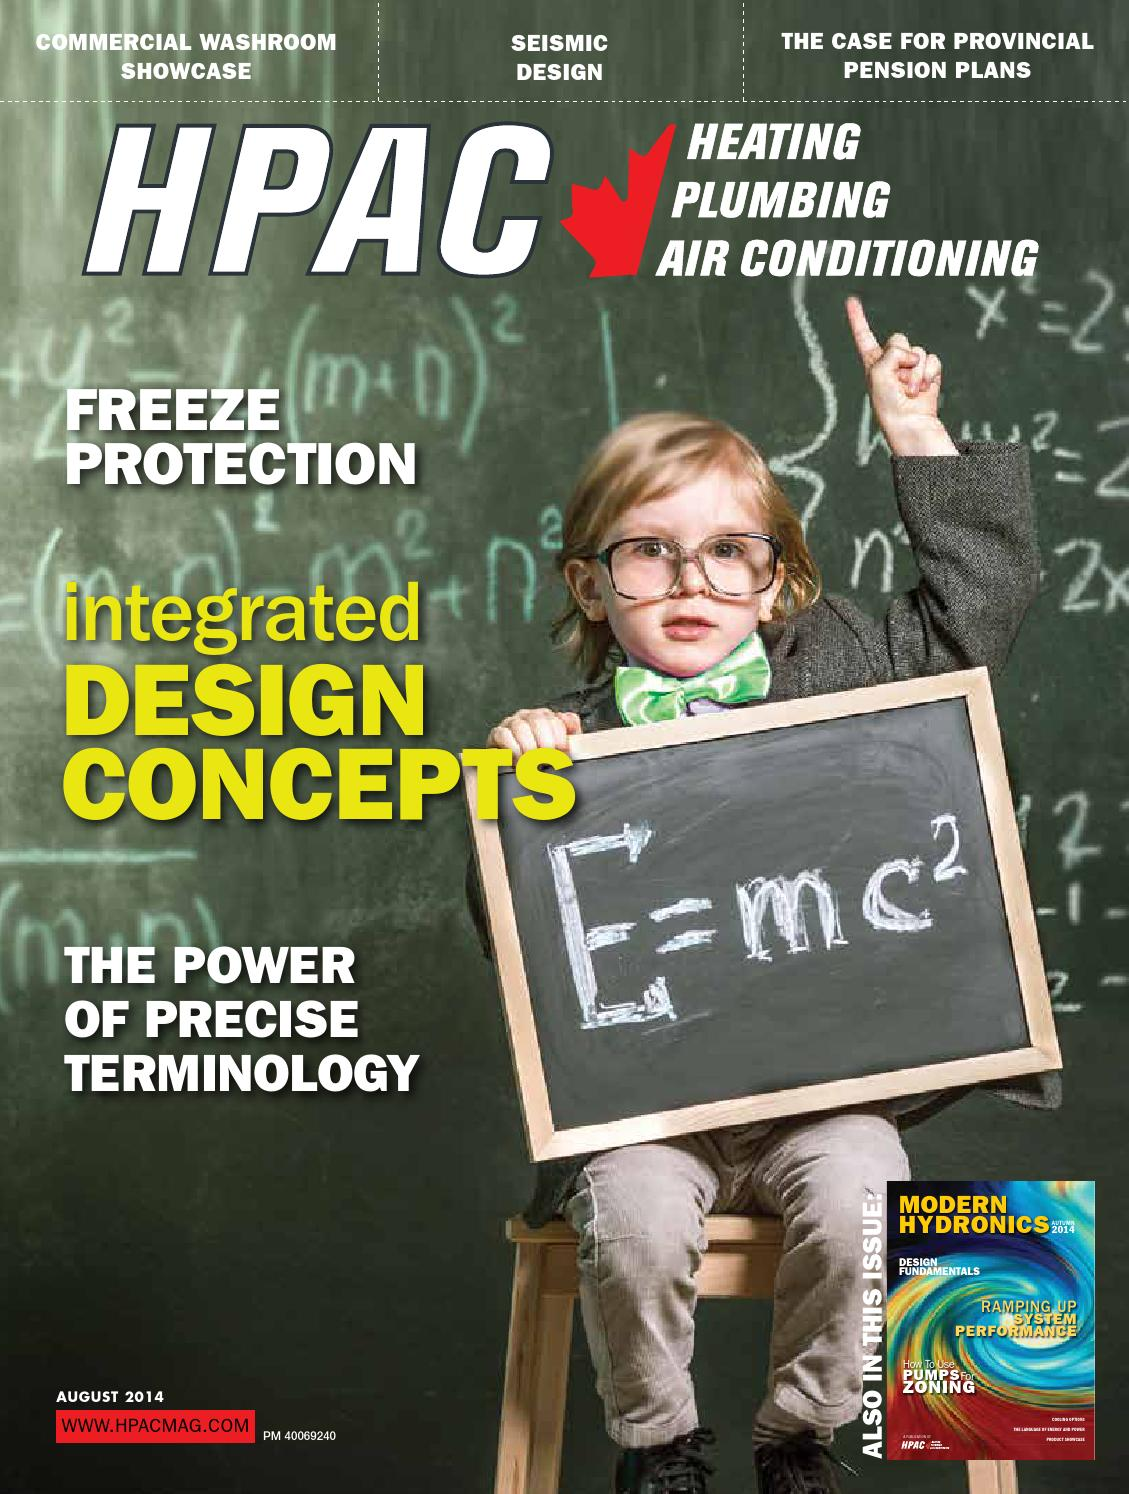 Hpac August 2014 By Annex Newcom Lp Issuu For An Apollo Hydronic Air Handler That Has A Wiring Diagram The Pdf